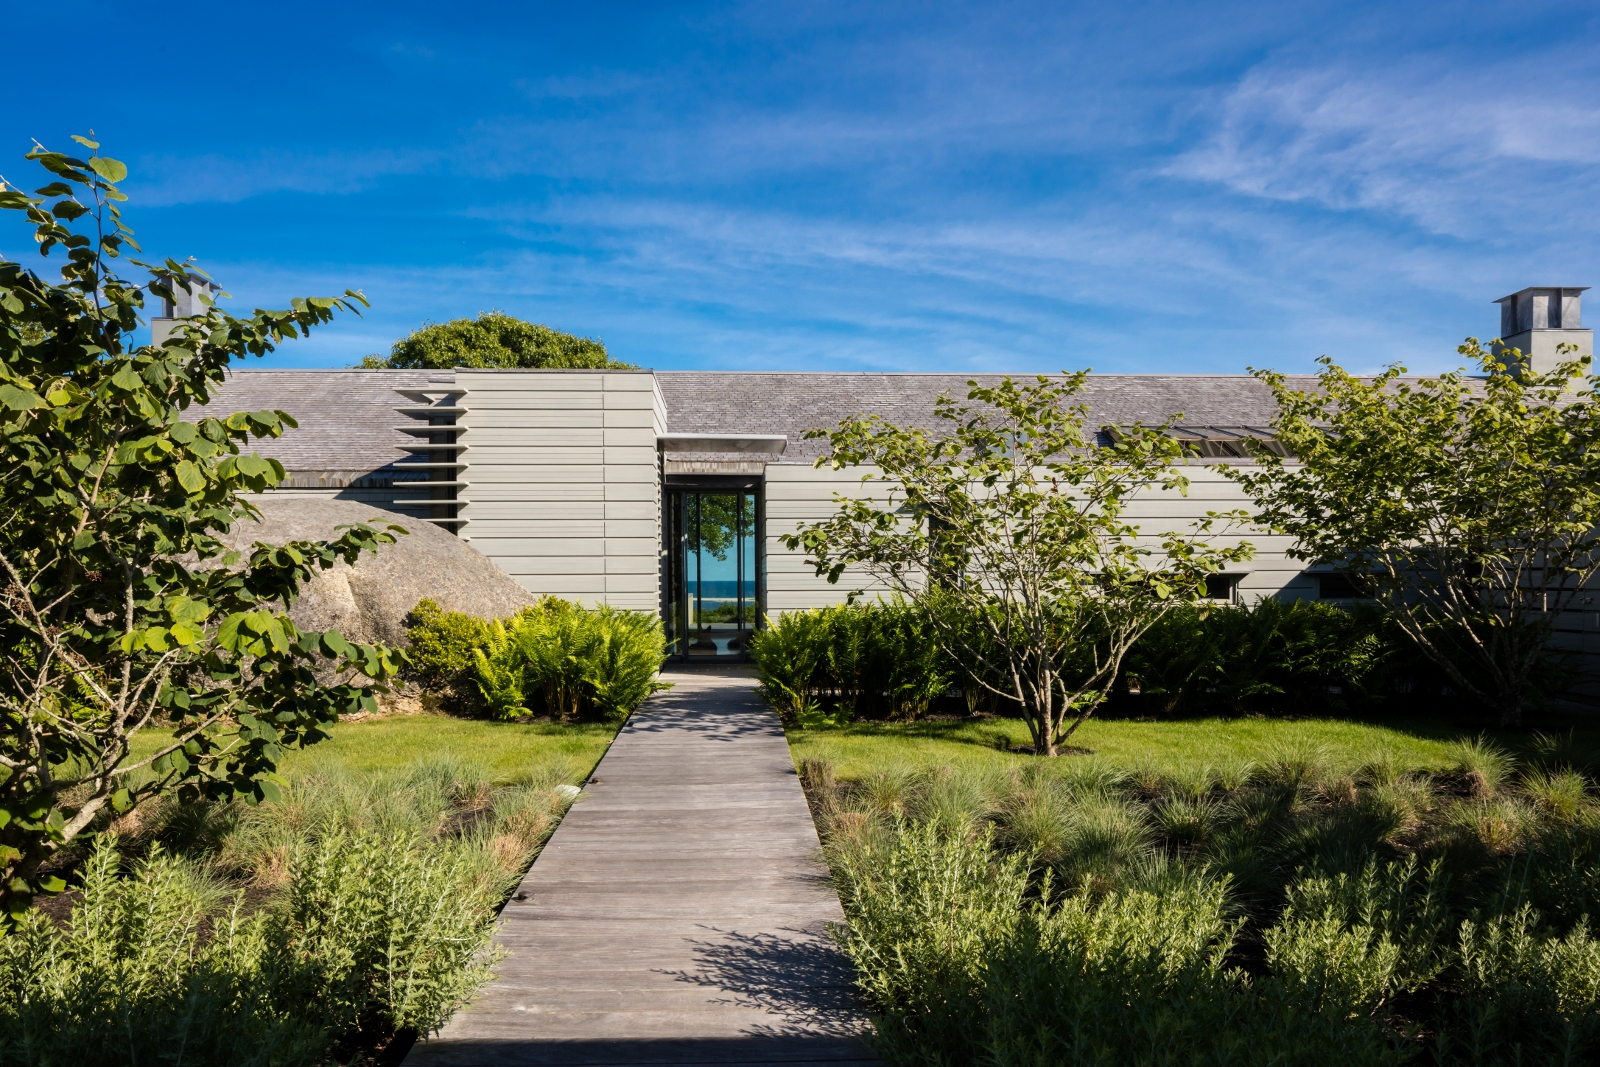 Casa Unifamiliar por un Venta en Spectacular Estate with Private Beach 8 Snail Road Chilmark, Massachusetts, 02535 Estados Unidos